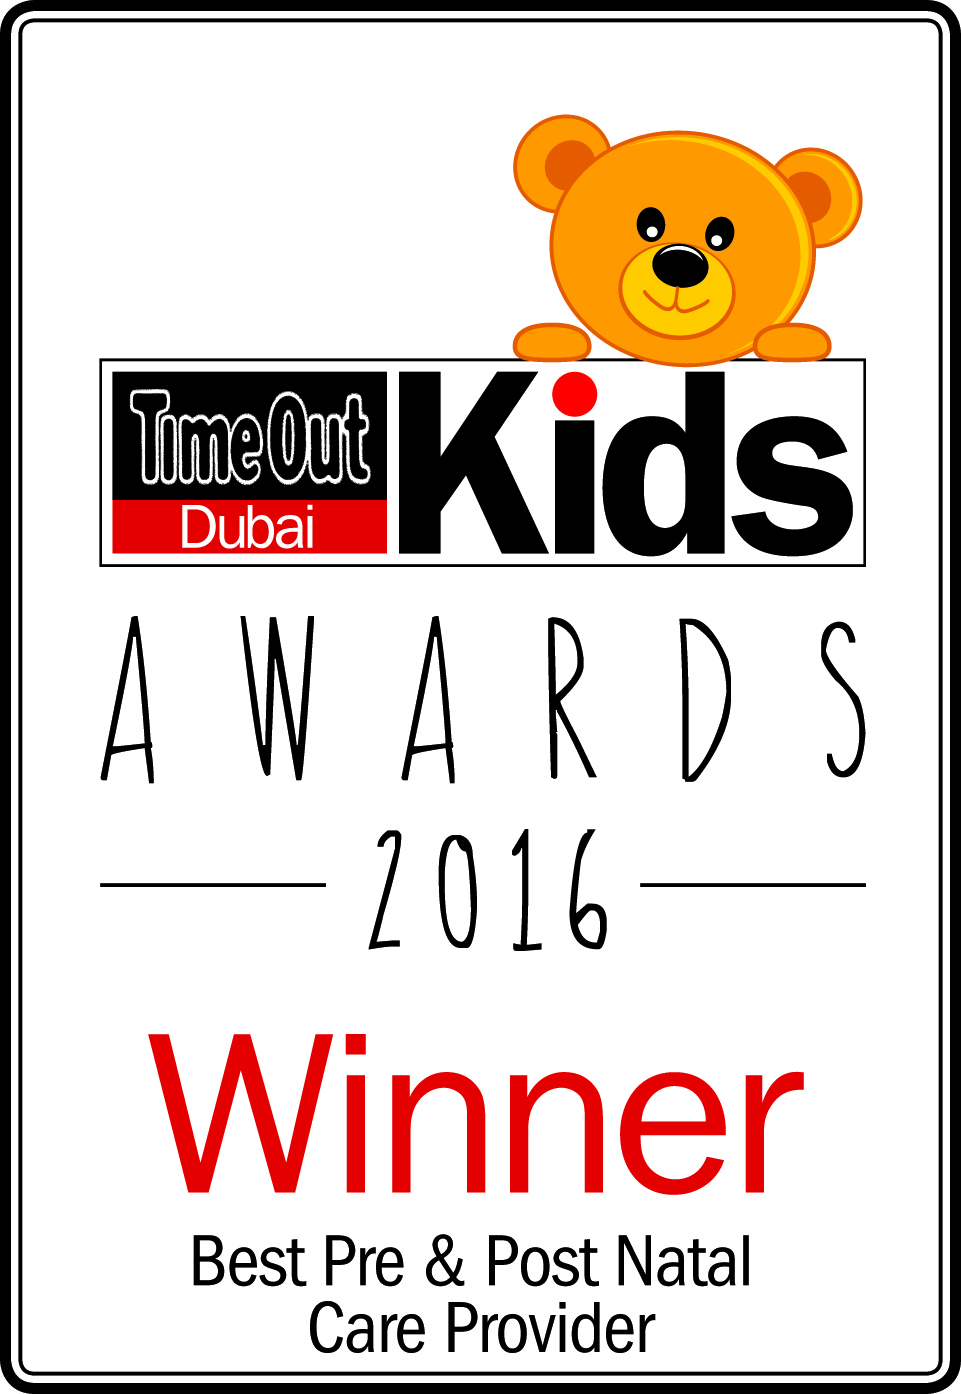 Time Out Dubai Kids Awards 2016 - Winner - Best Pre & Post Natal Care Provider.jpg